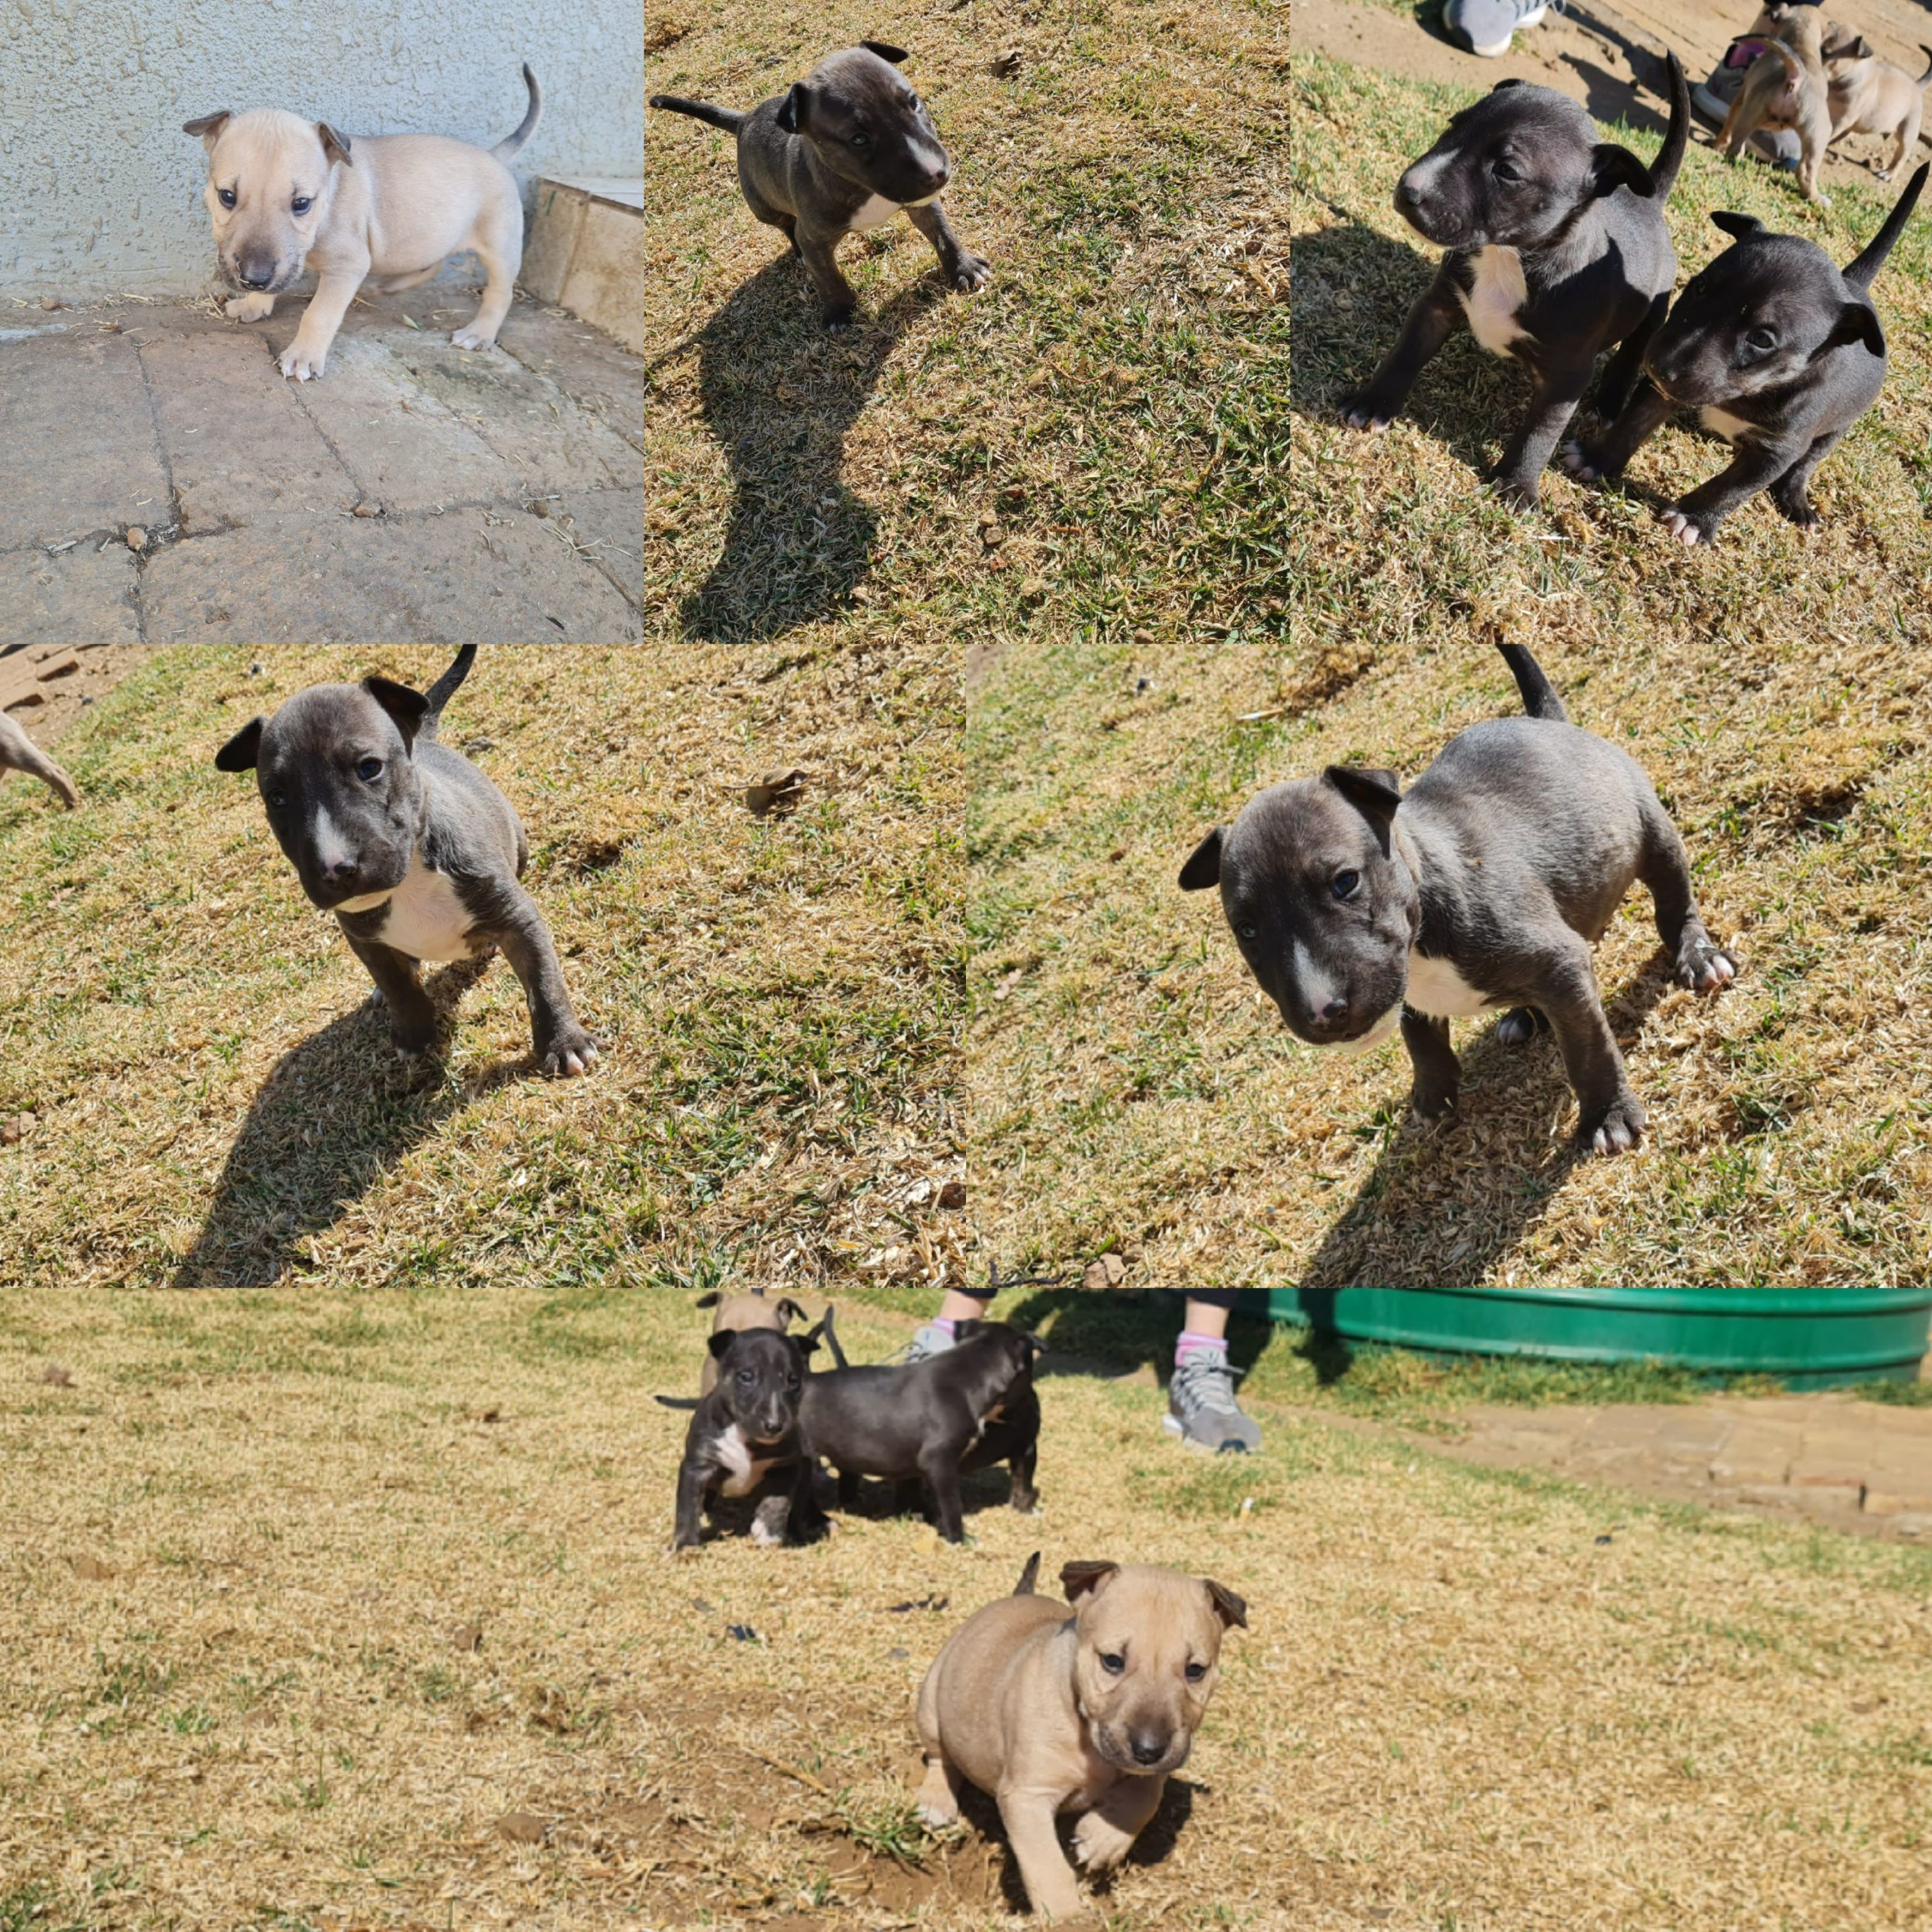 Bull Terrier Puppies in East Rand (09/08/2021)